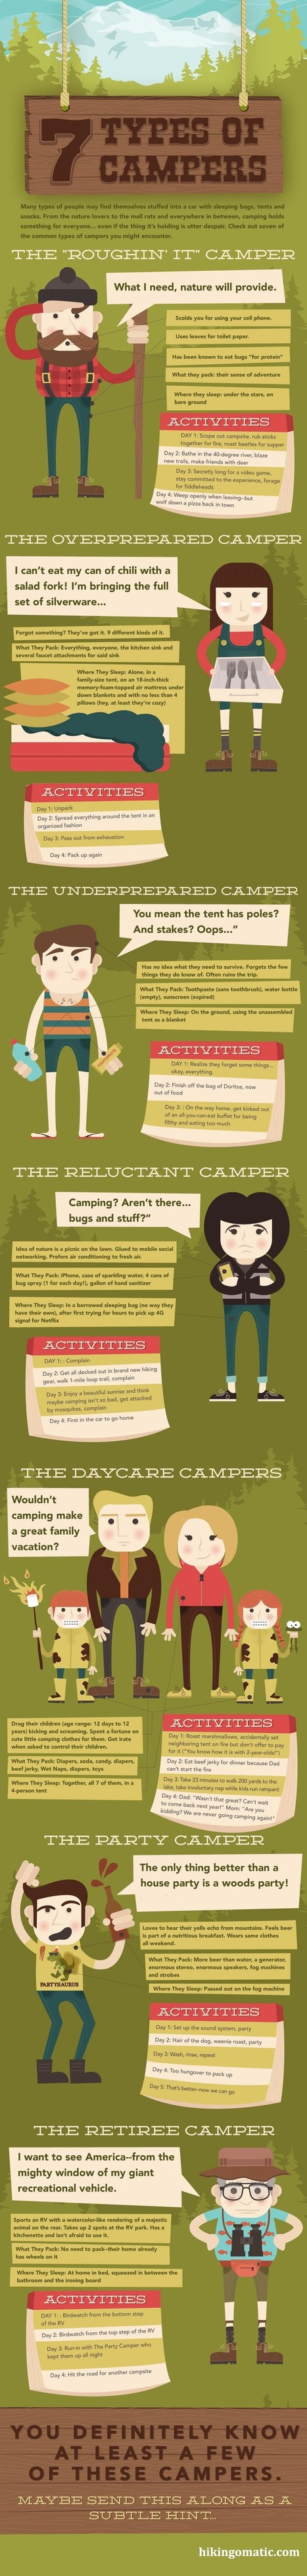 7 Types Of Campers: What's your type? - hikingomatic.com | campers | Scoop.it